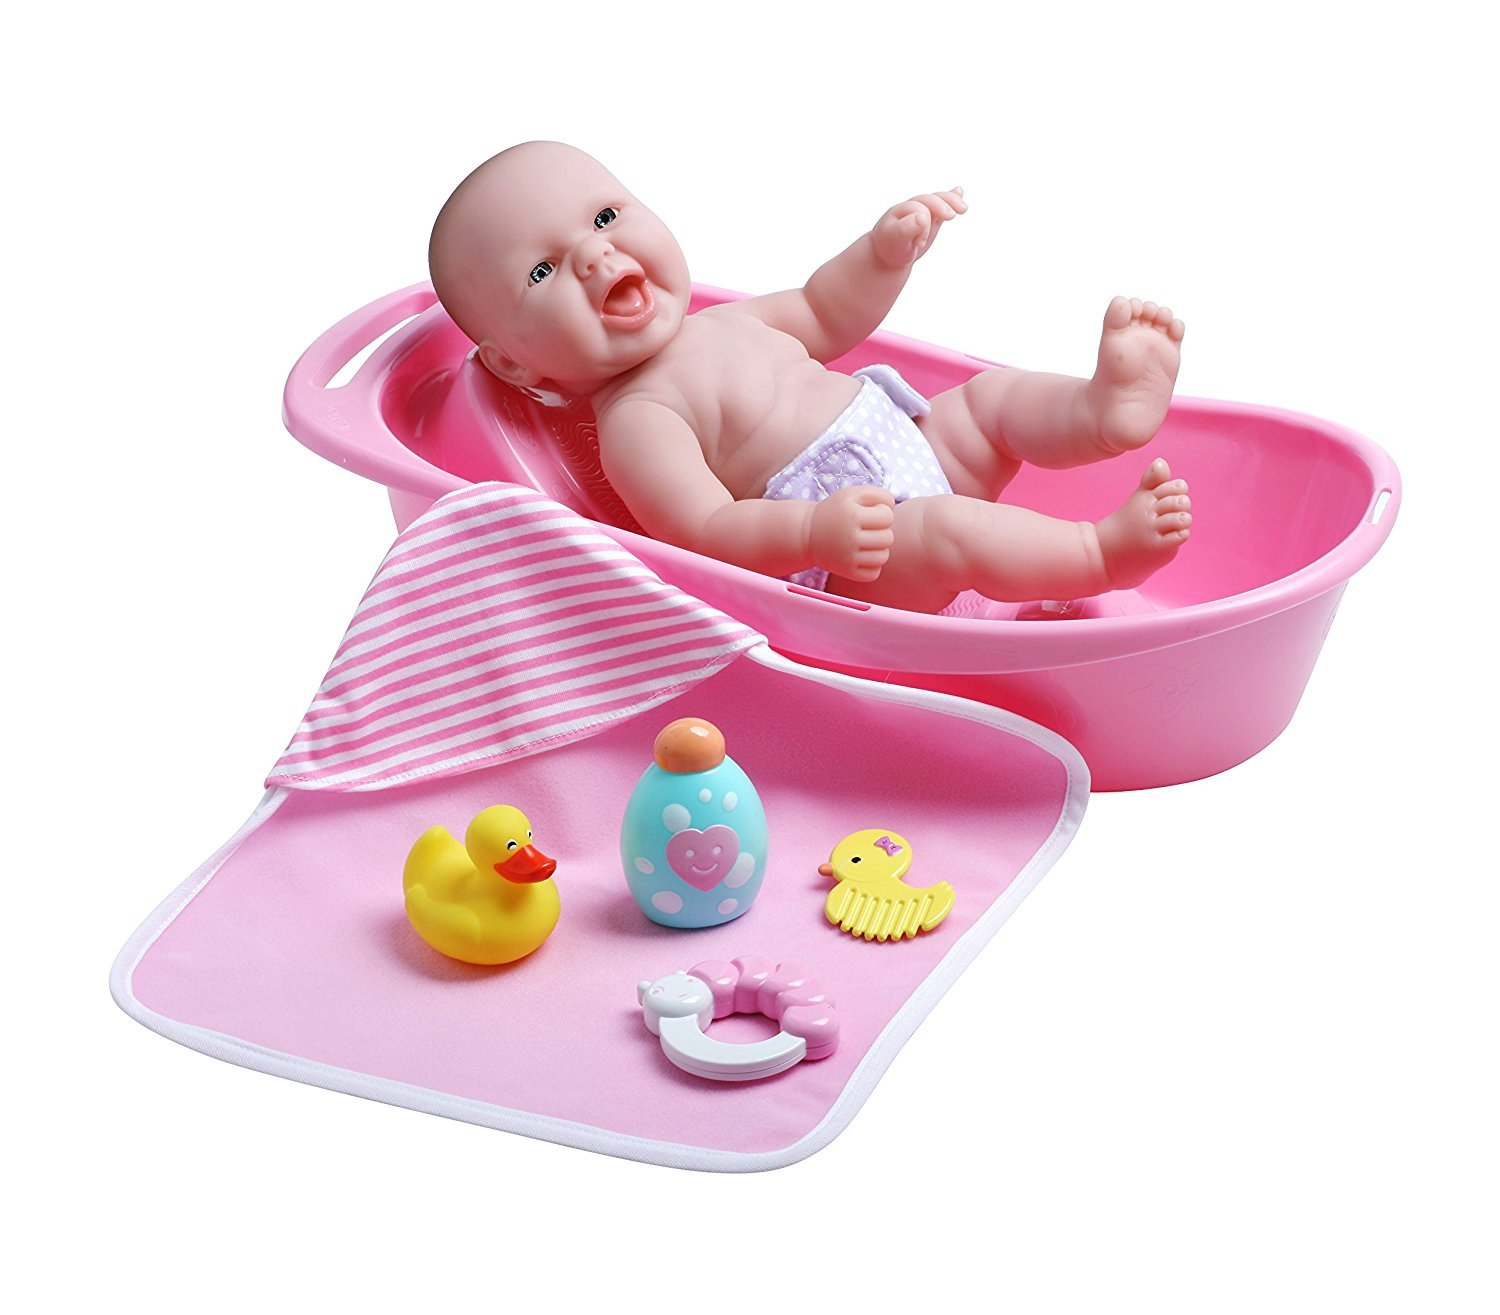 Best baby dolls for bathtub | Amazon.com